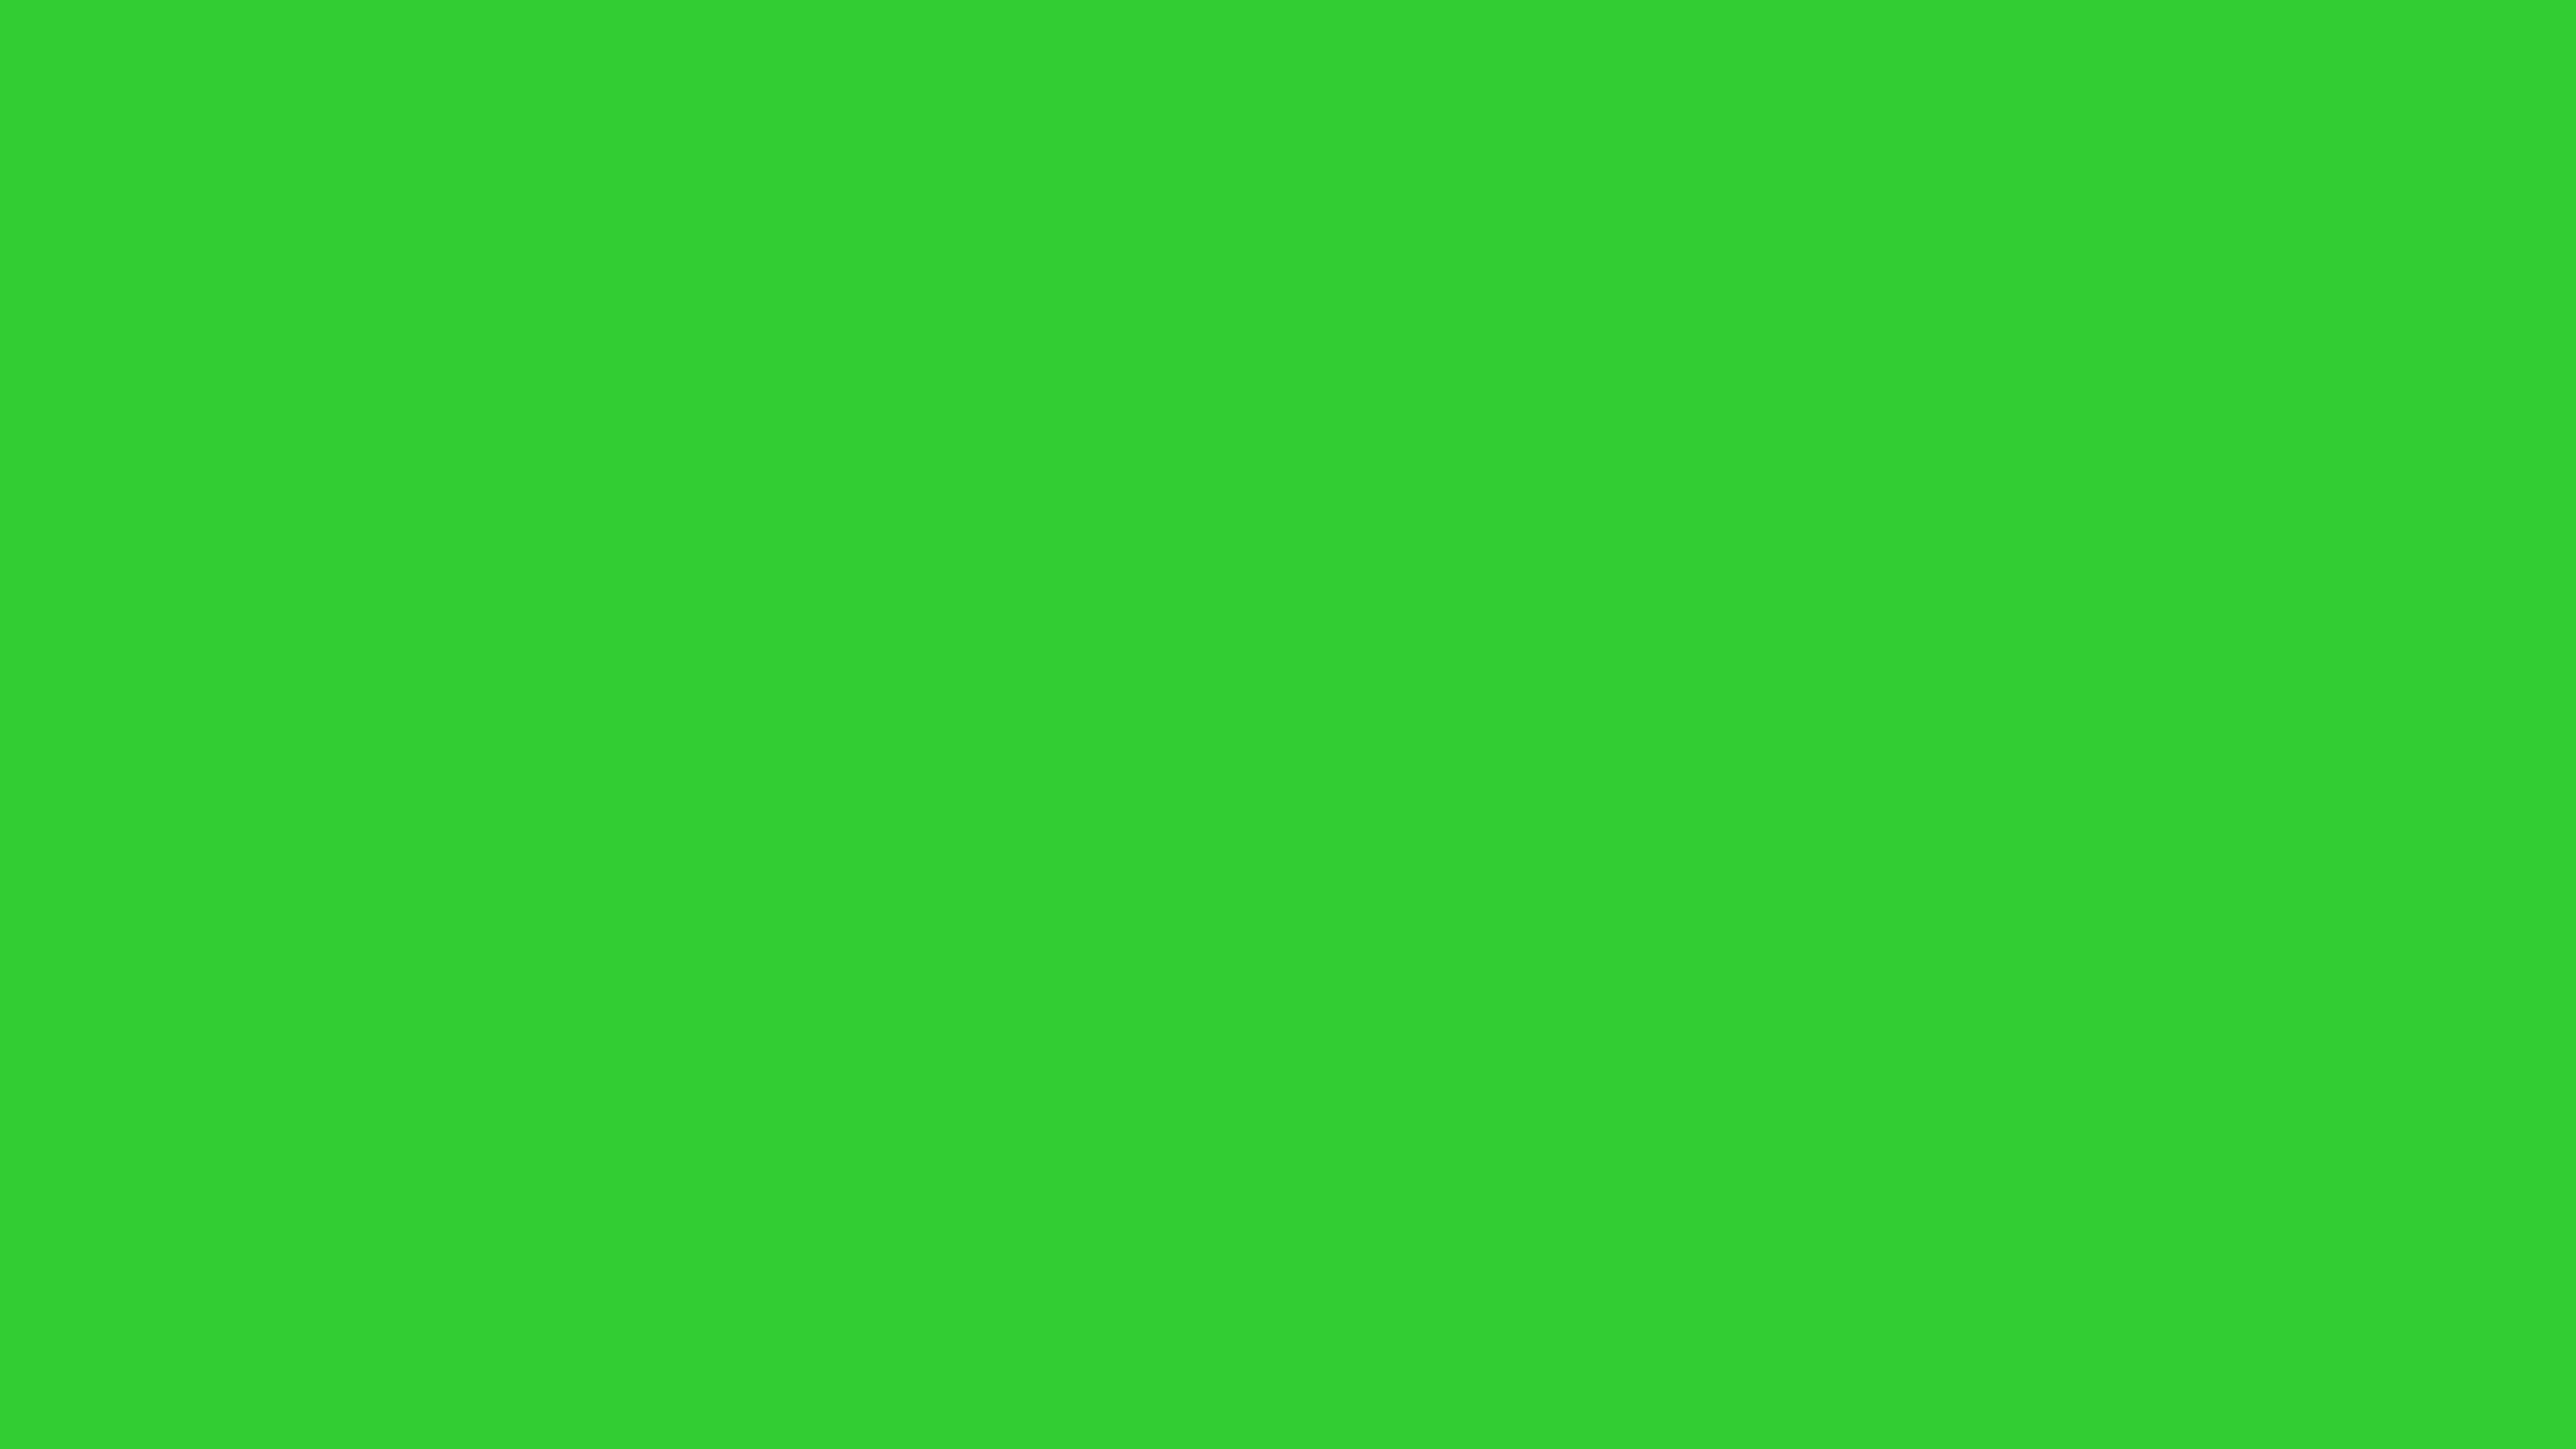 3840x2160 Lime Green Solid Color Background